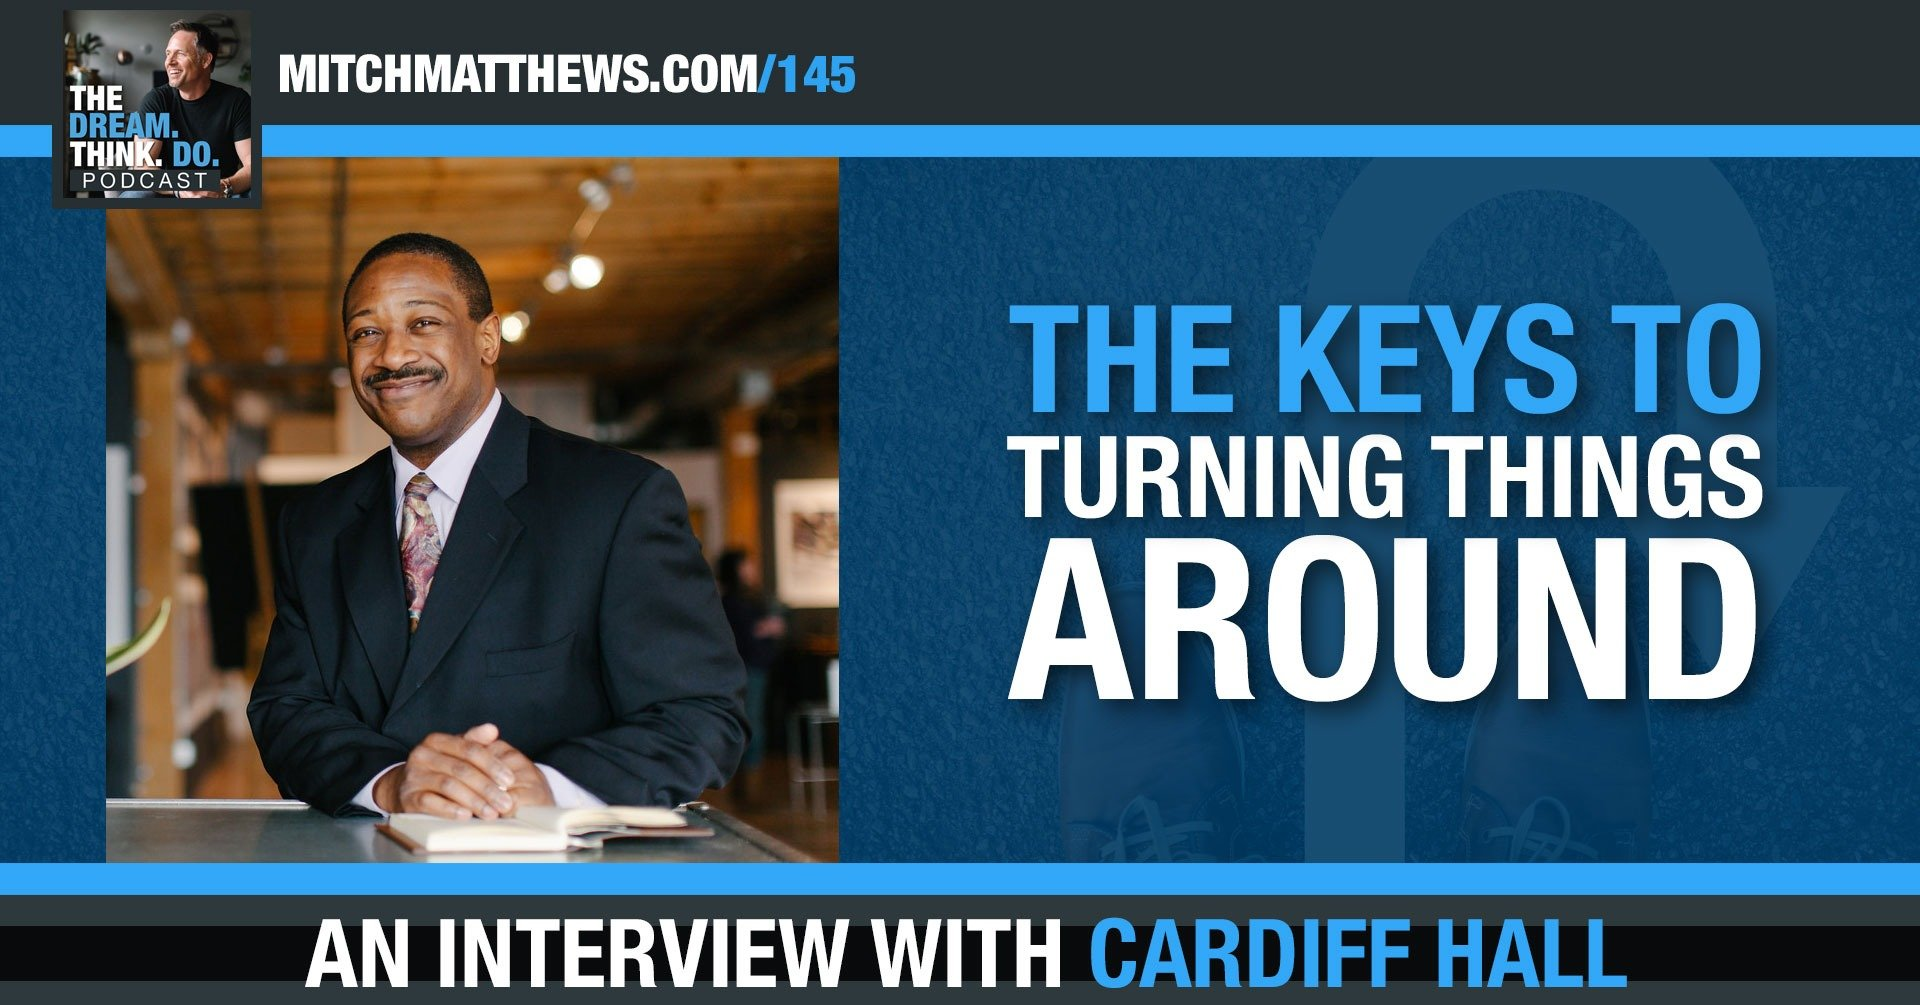 Cardiff Hall | The keys to turning things around!